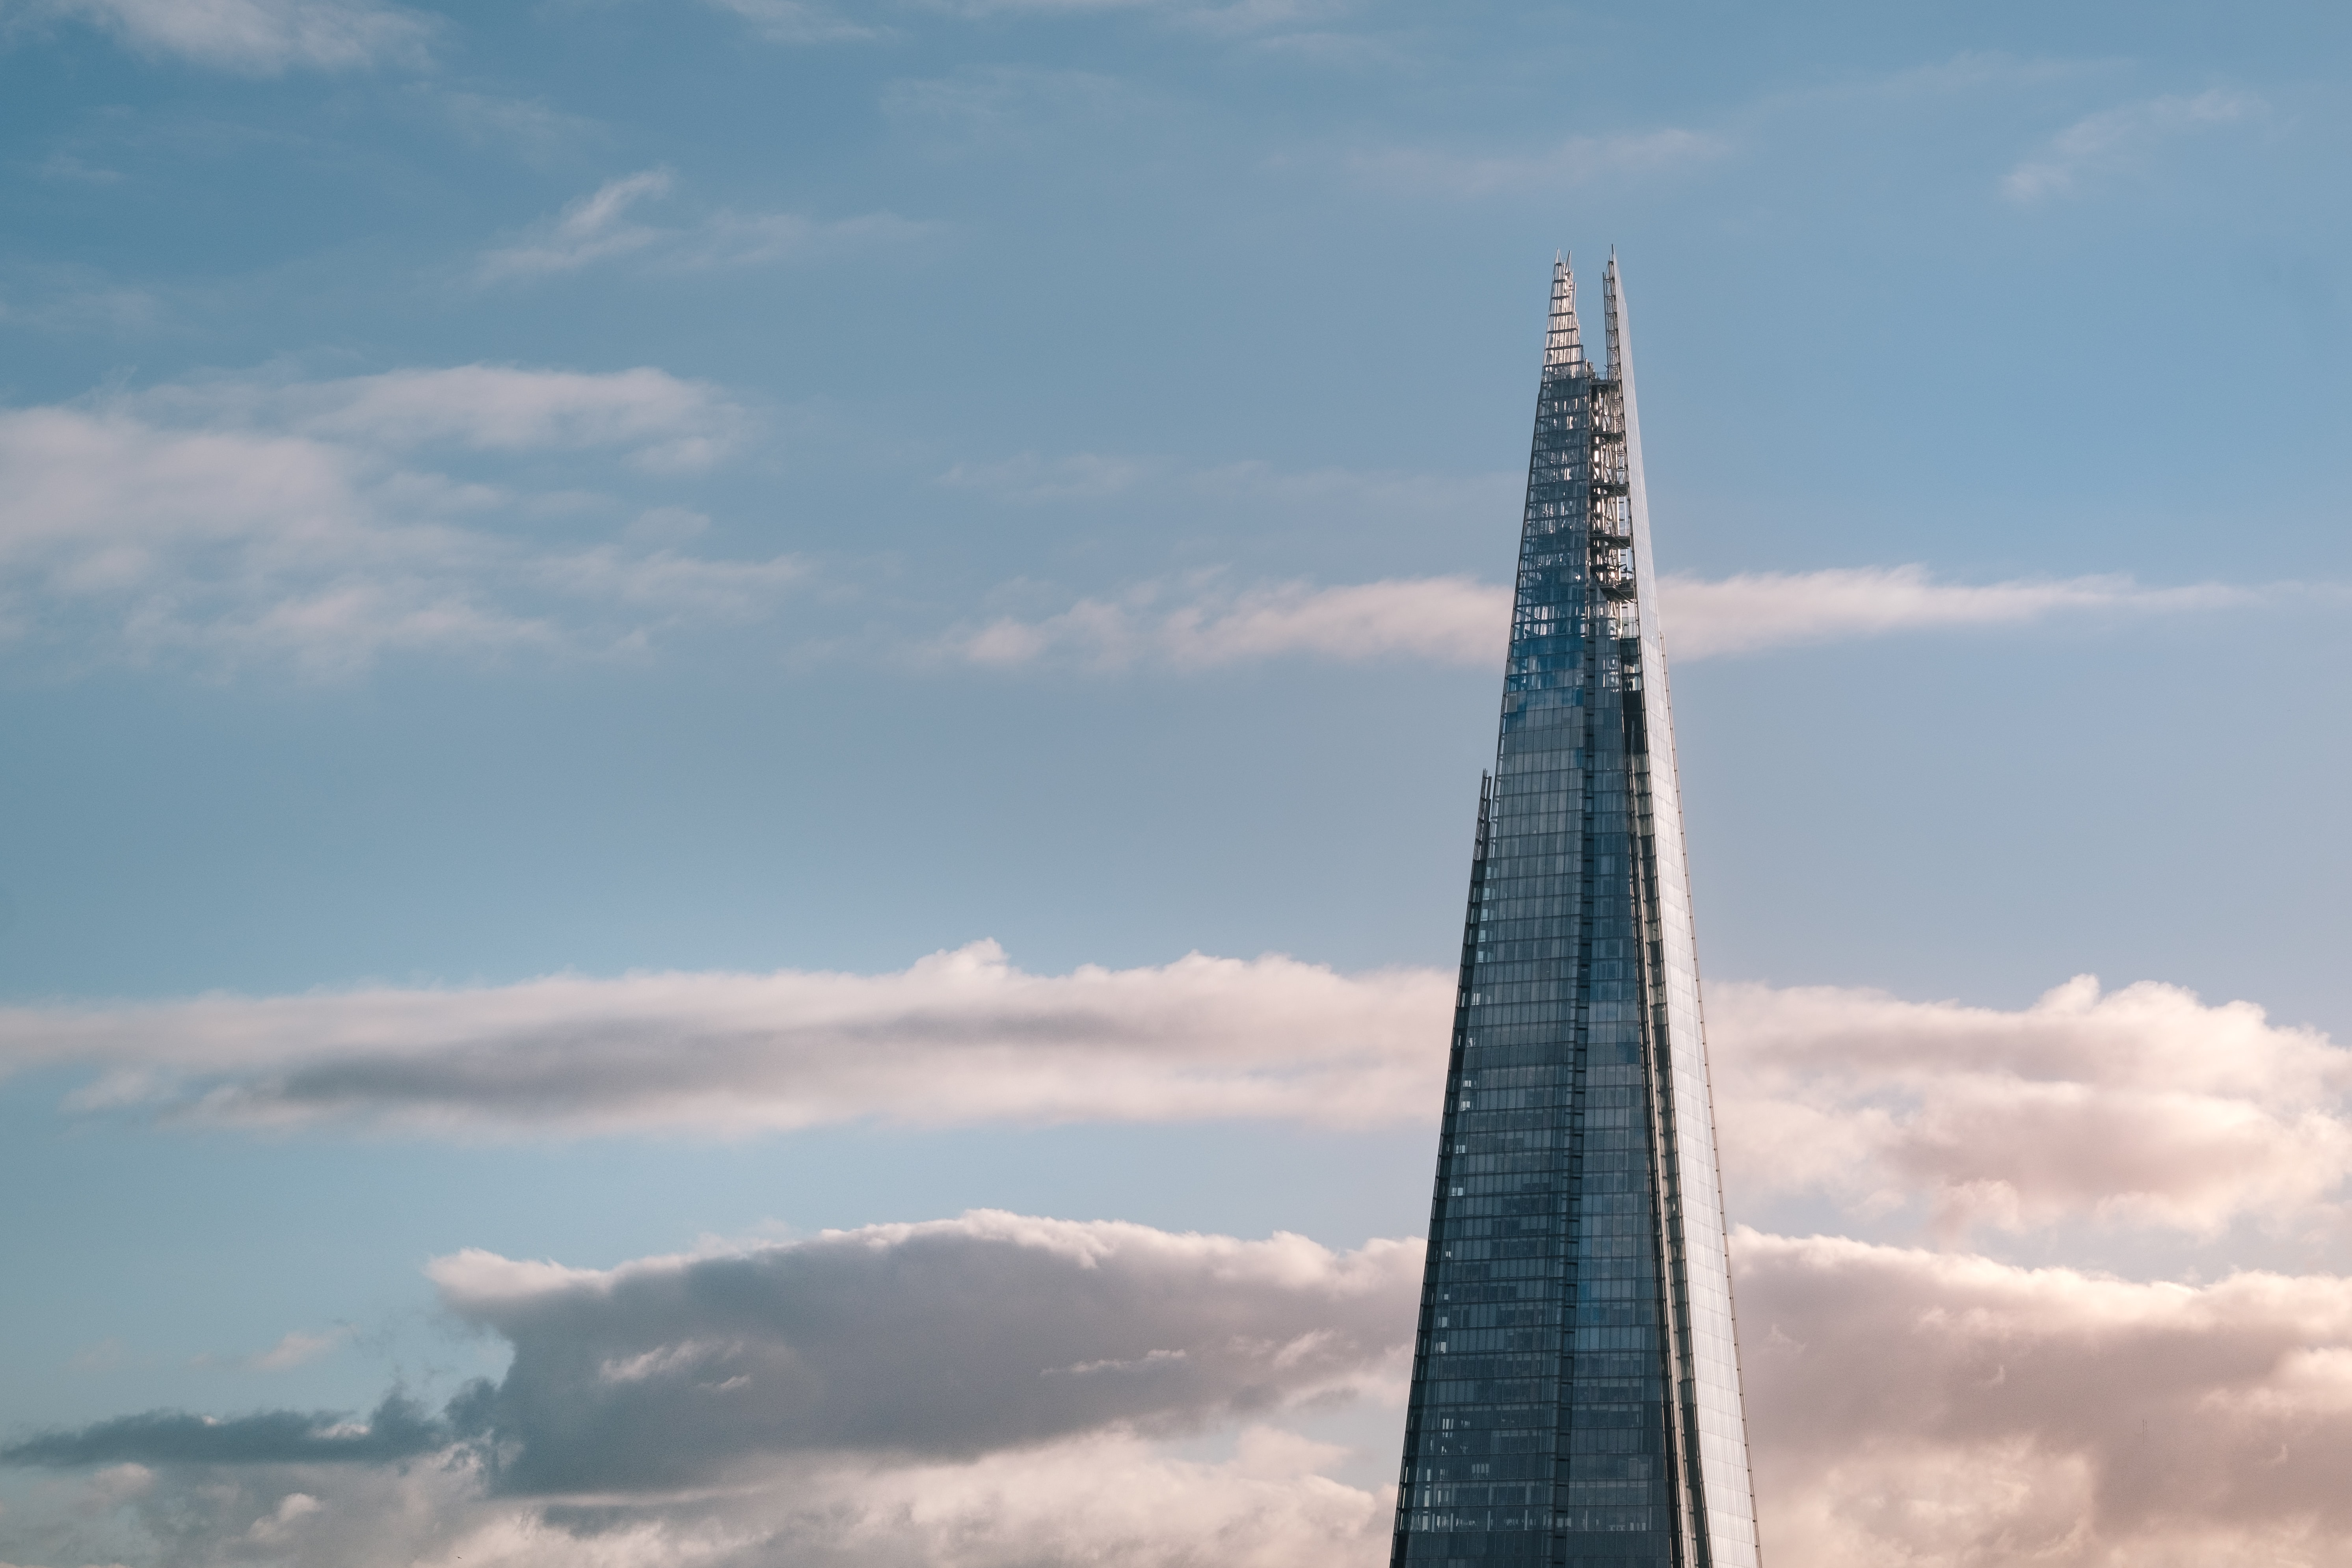 high-rise tower with white clouds in background